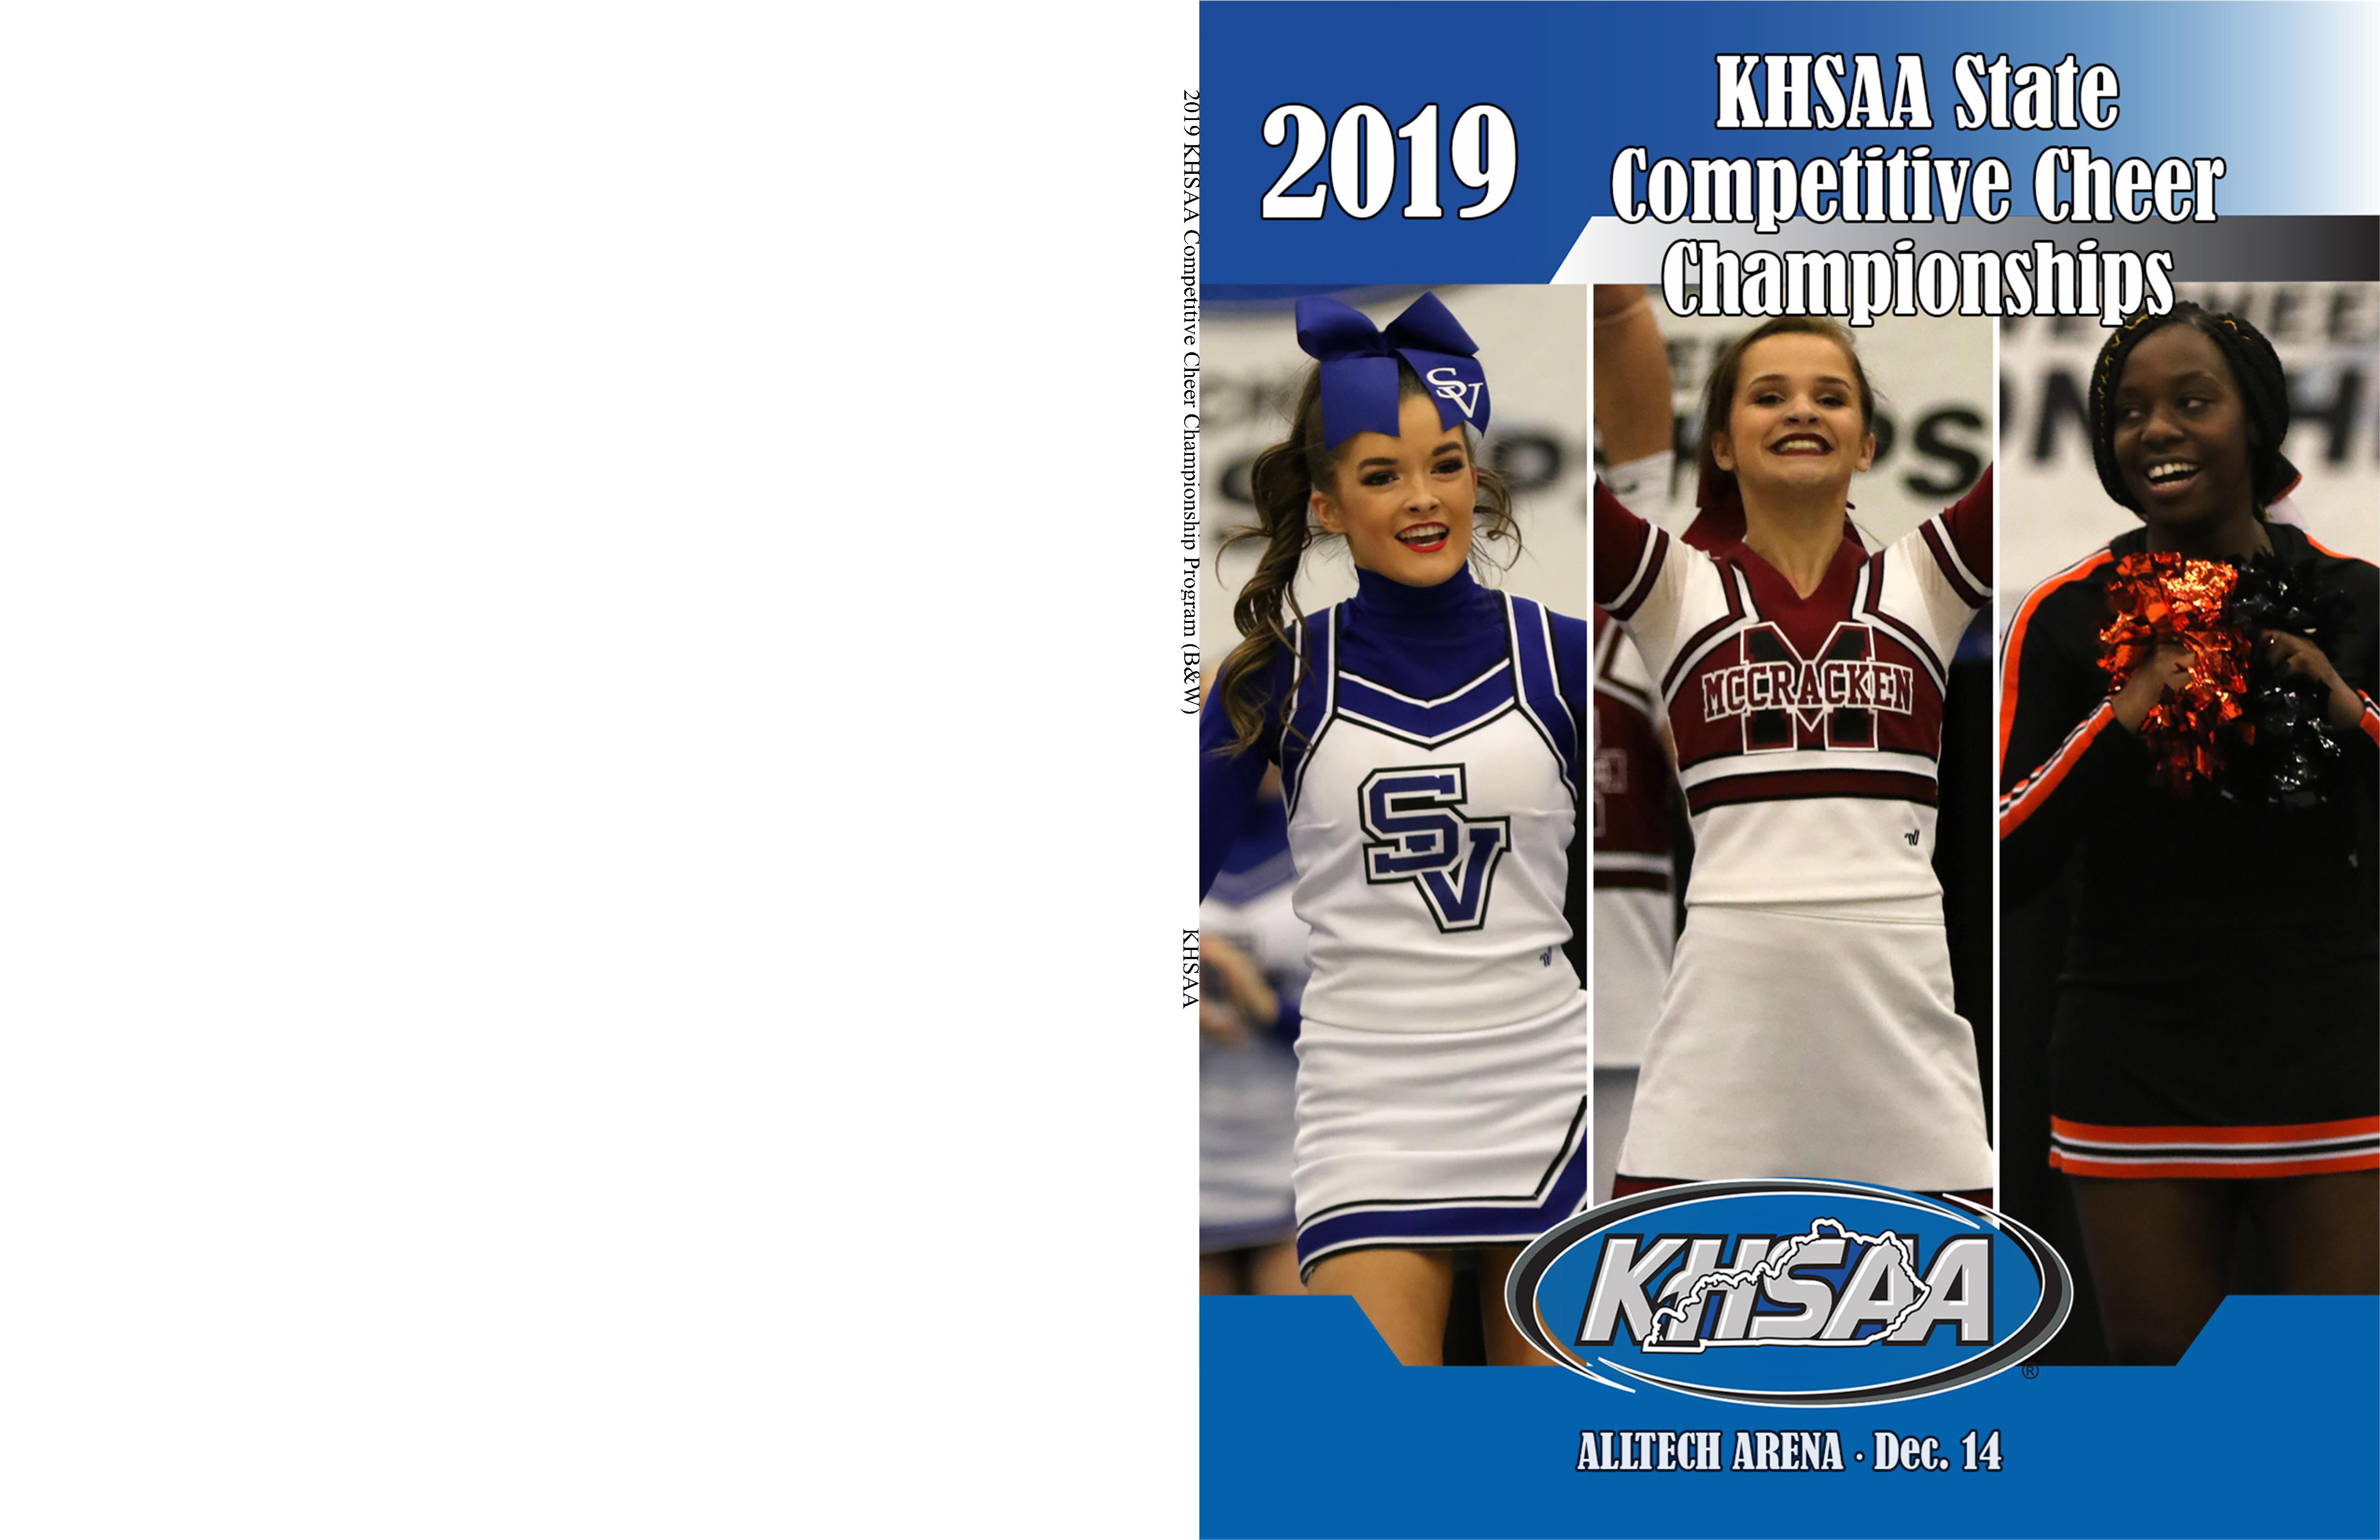 2019 KHSAA Competitive Cheer Championship Program (B&W) cover image